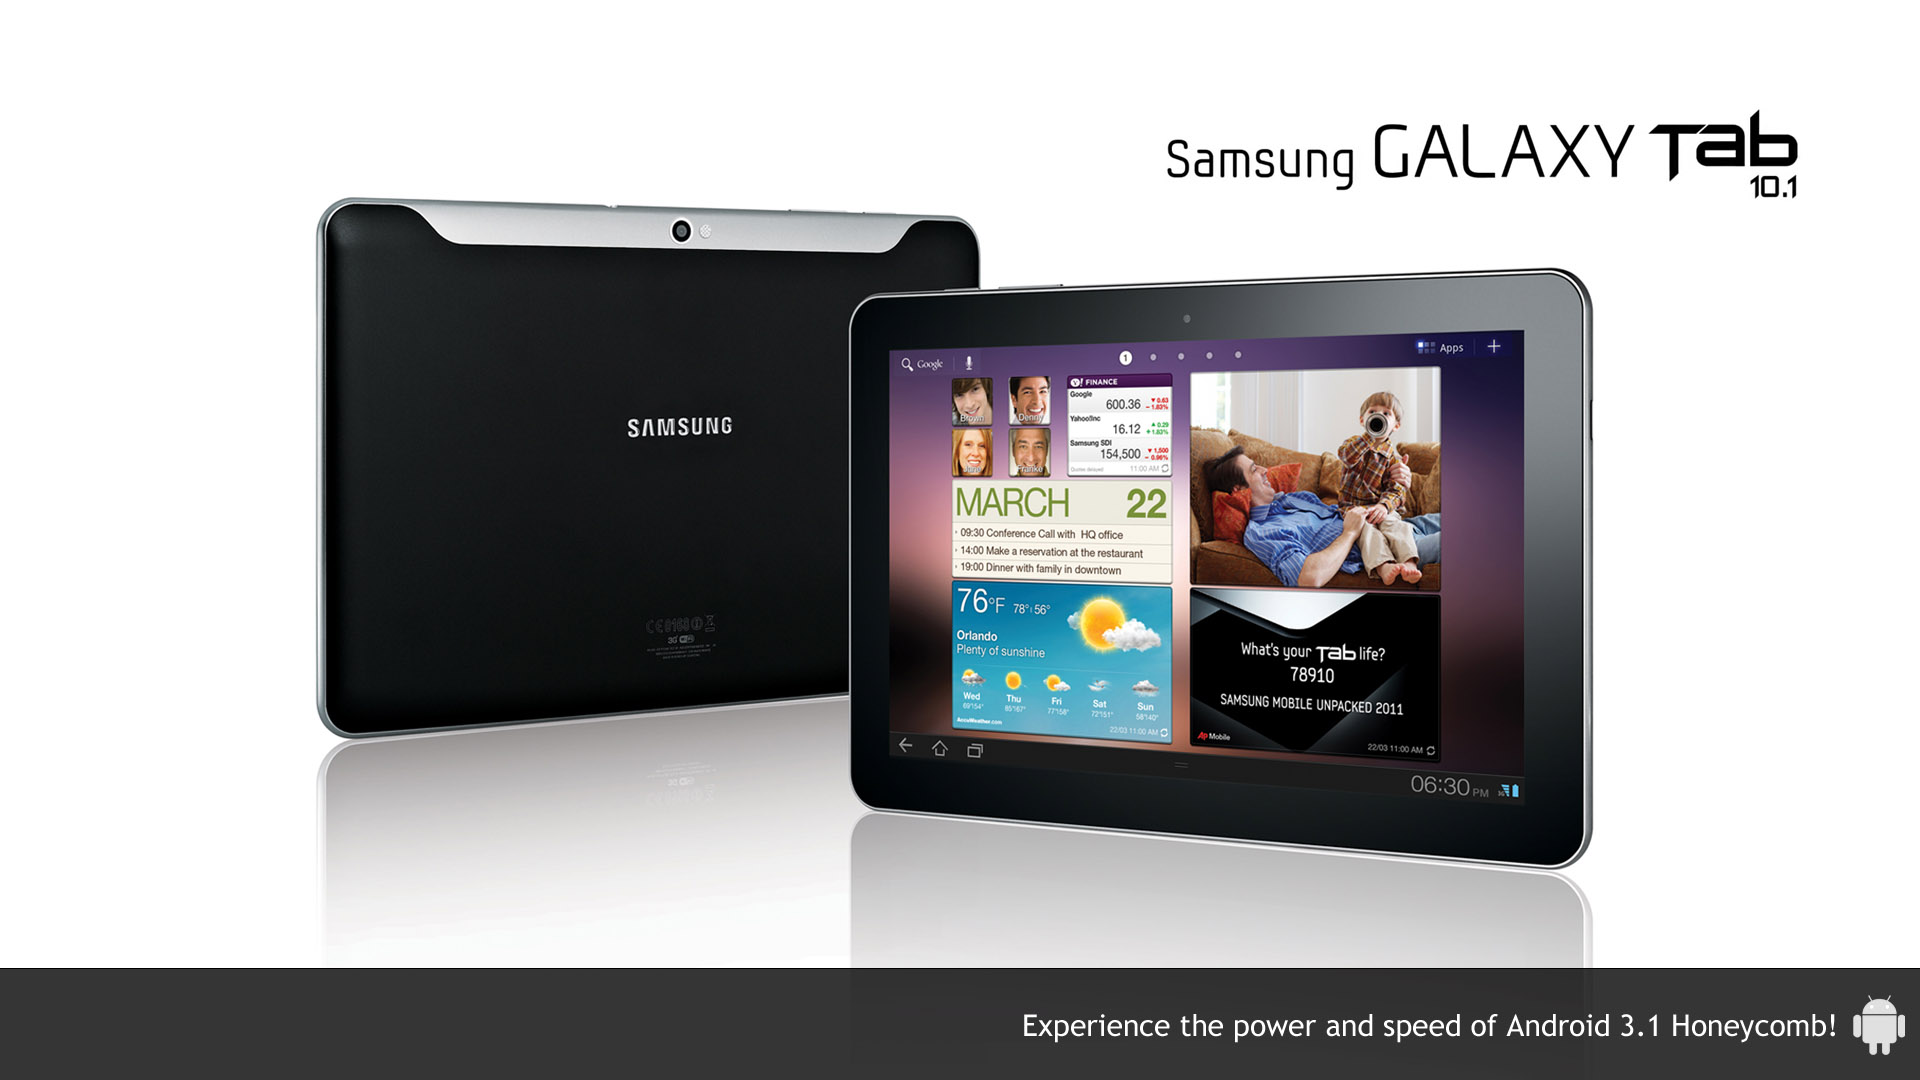 android 31 on samsung galaxy tab 101 1920x1080